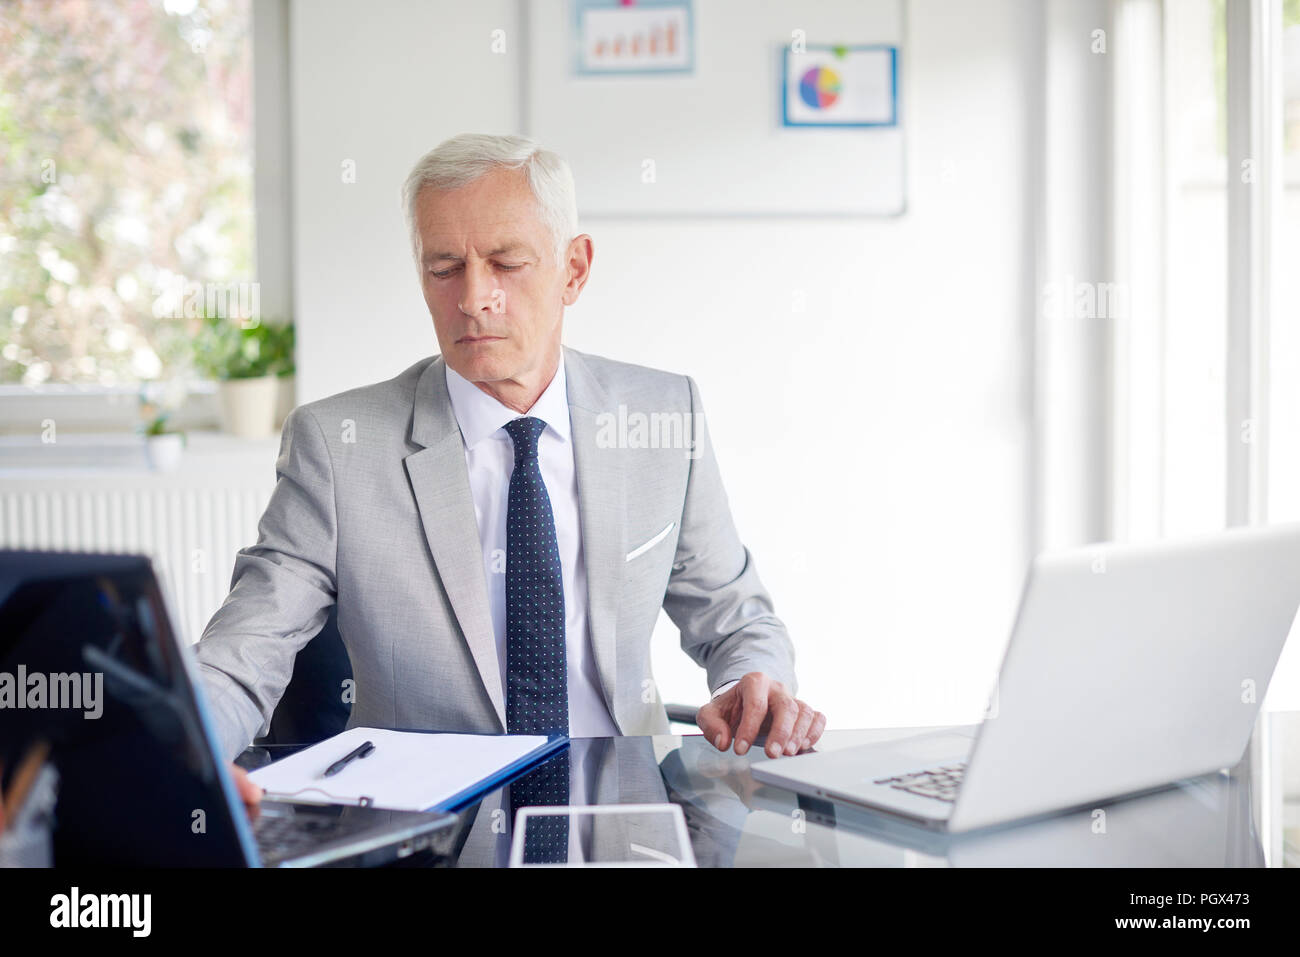 Shot of senior financial advisor businessman working on laptop while sitting at office. Stock Photo